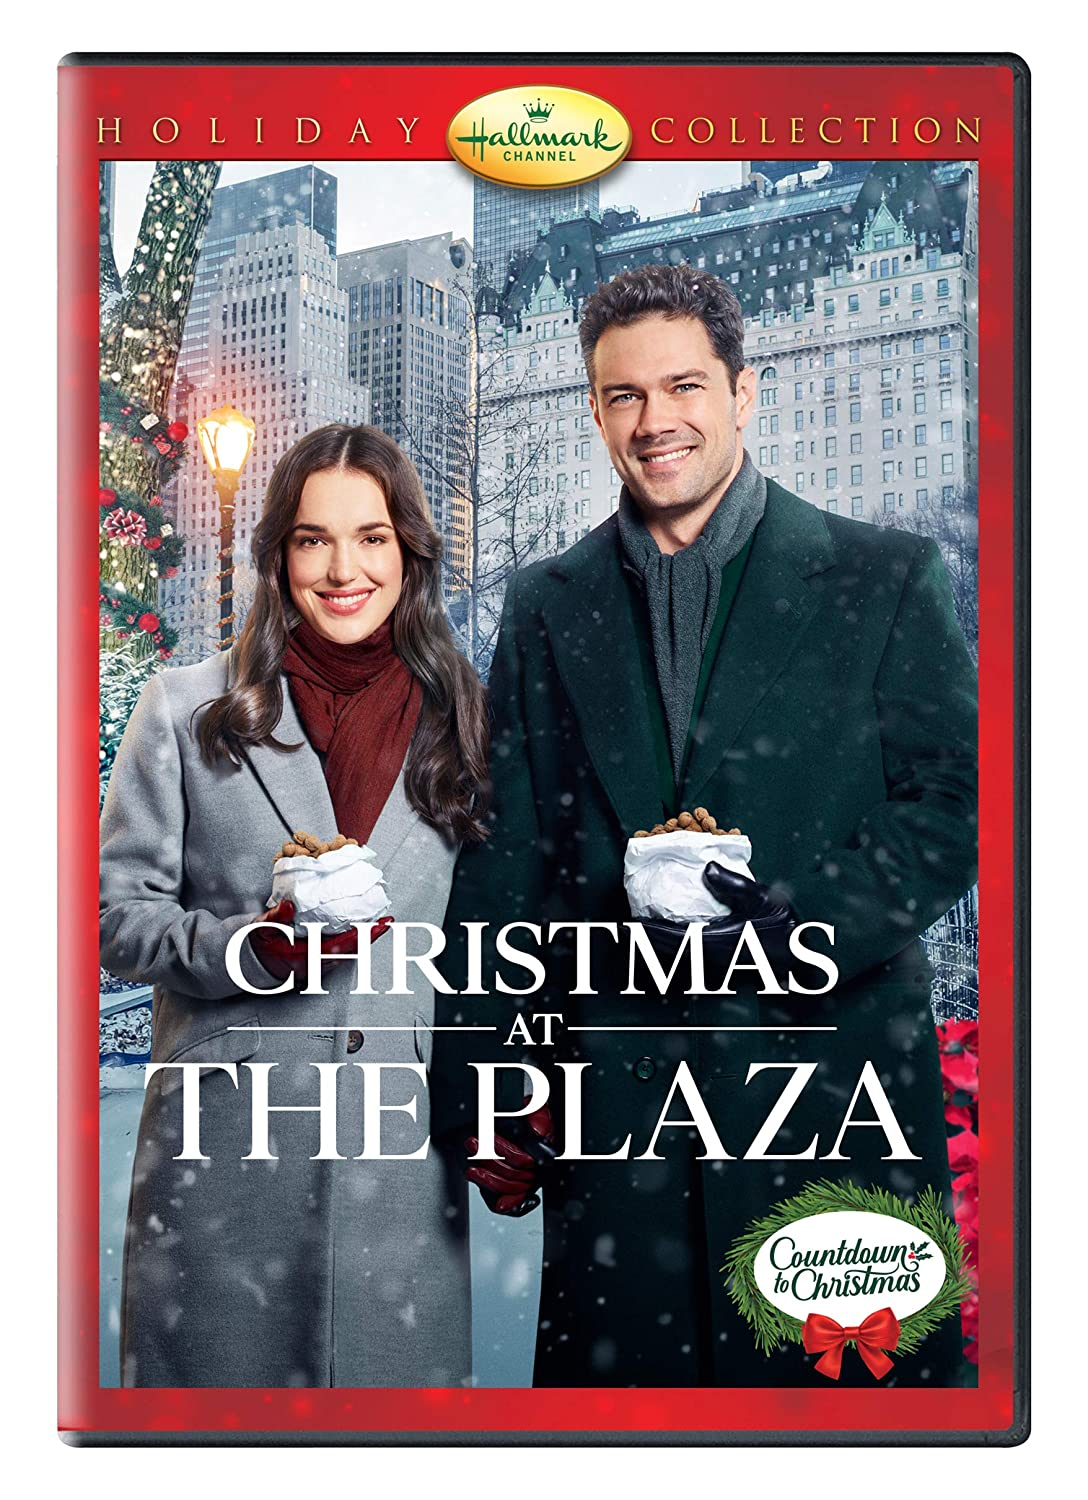 Its A Wonderful Movie Your Guide To Family And Christmas Movies On Tv Christmas At The Plaza Dvd And More New Hallmark Dvd Releases See Here